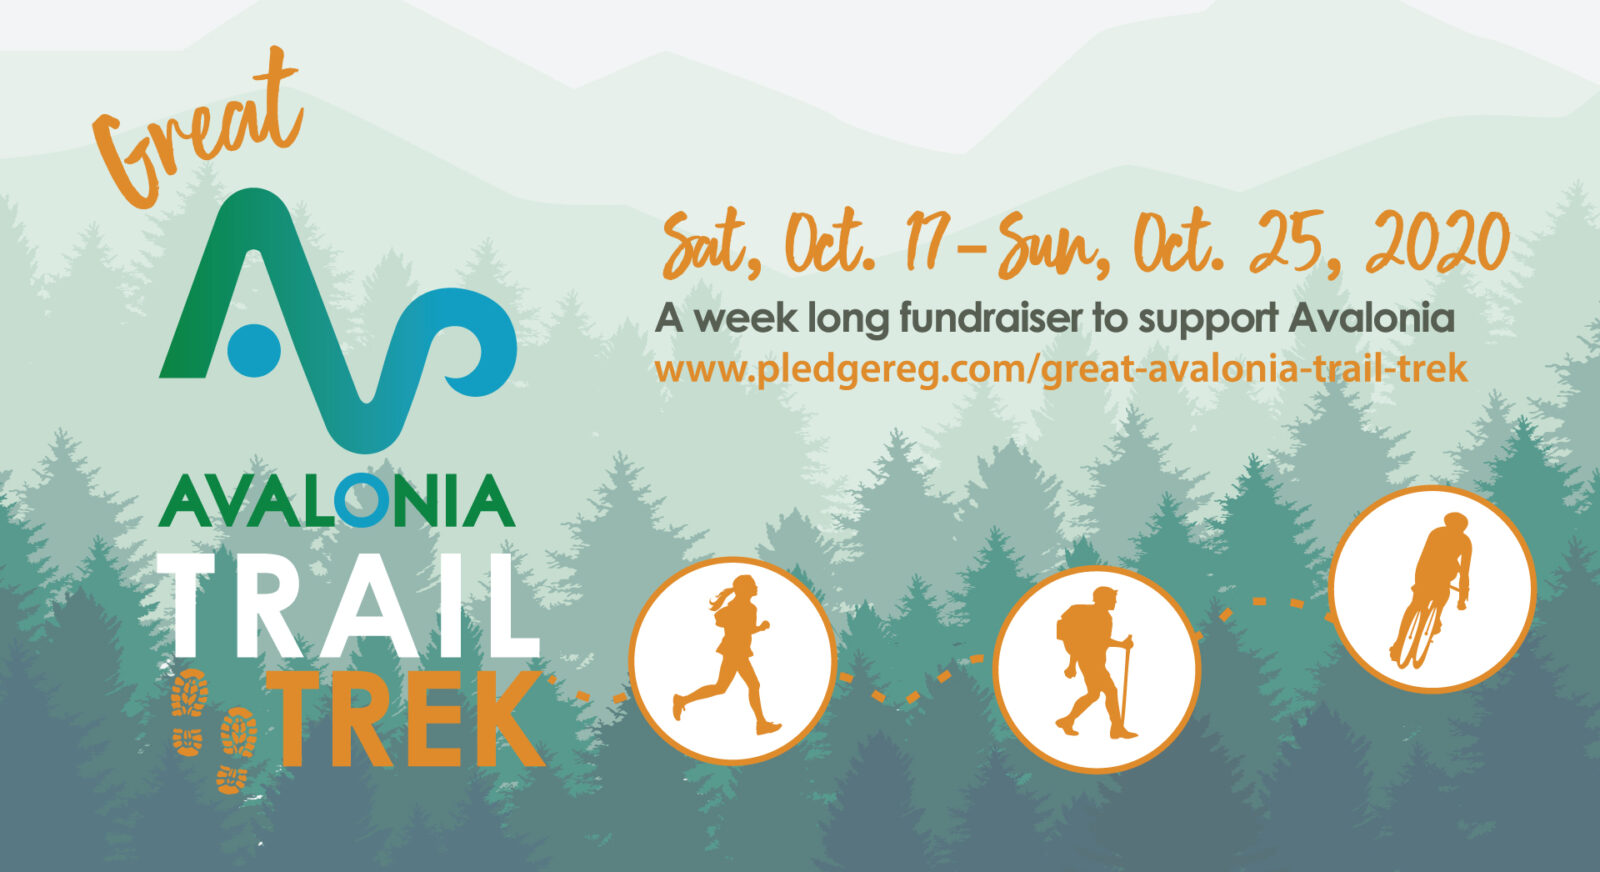 Announcing The Great Avalonia Trail Trek!